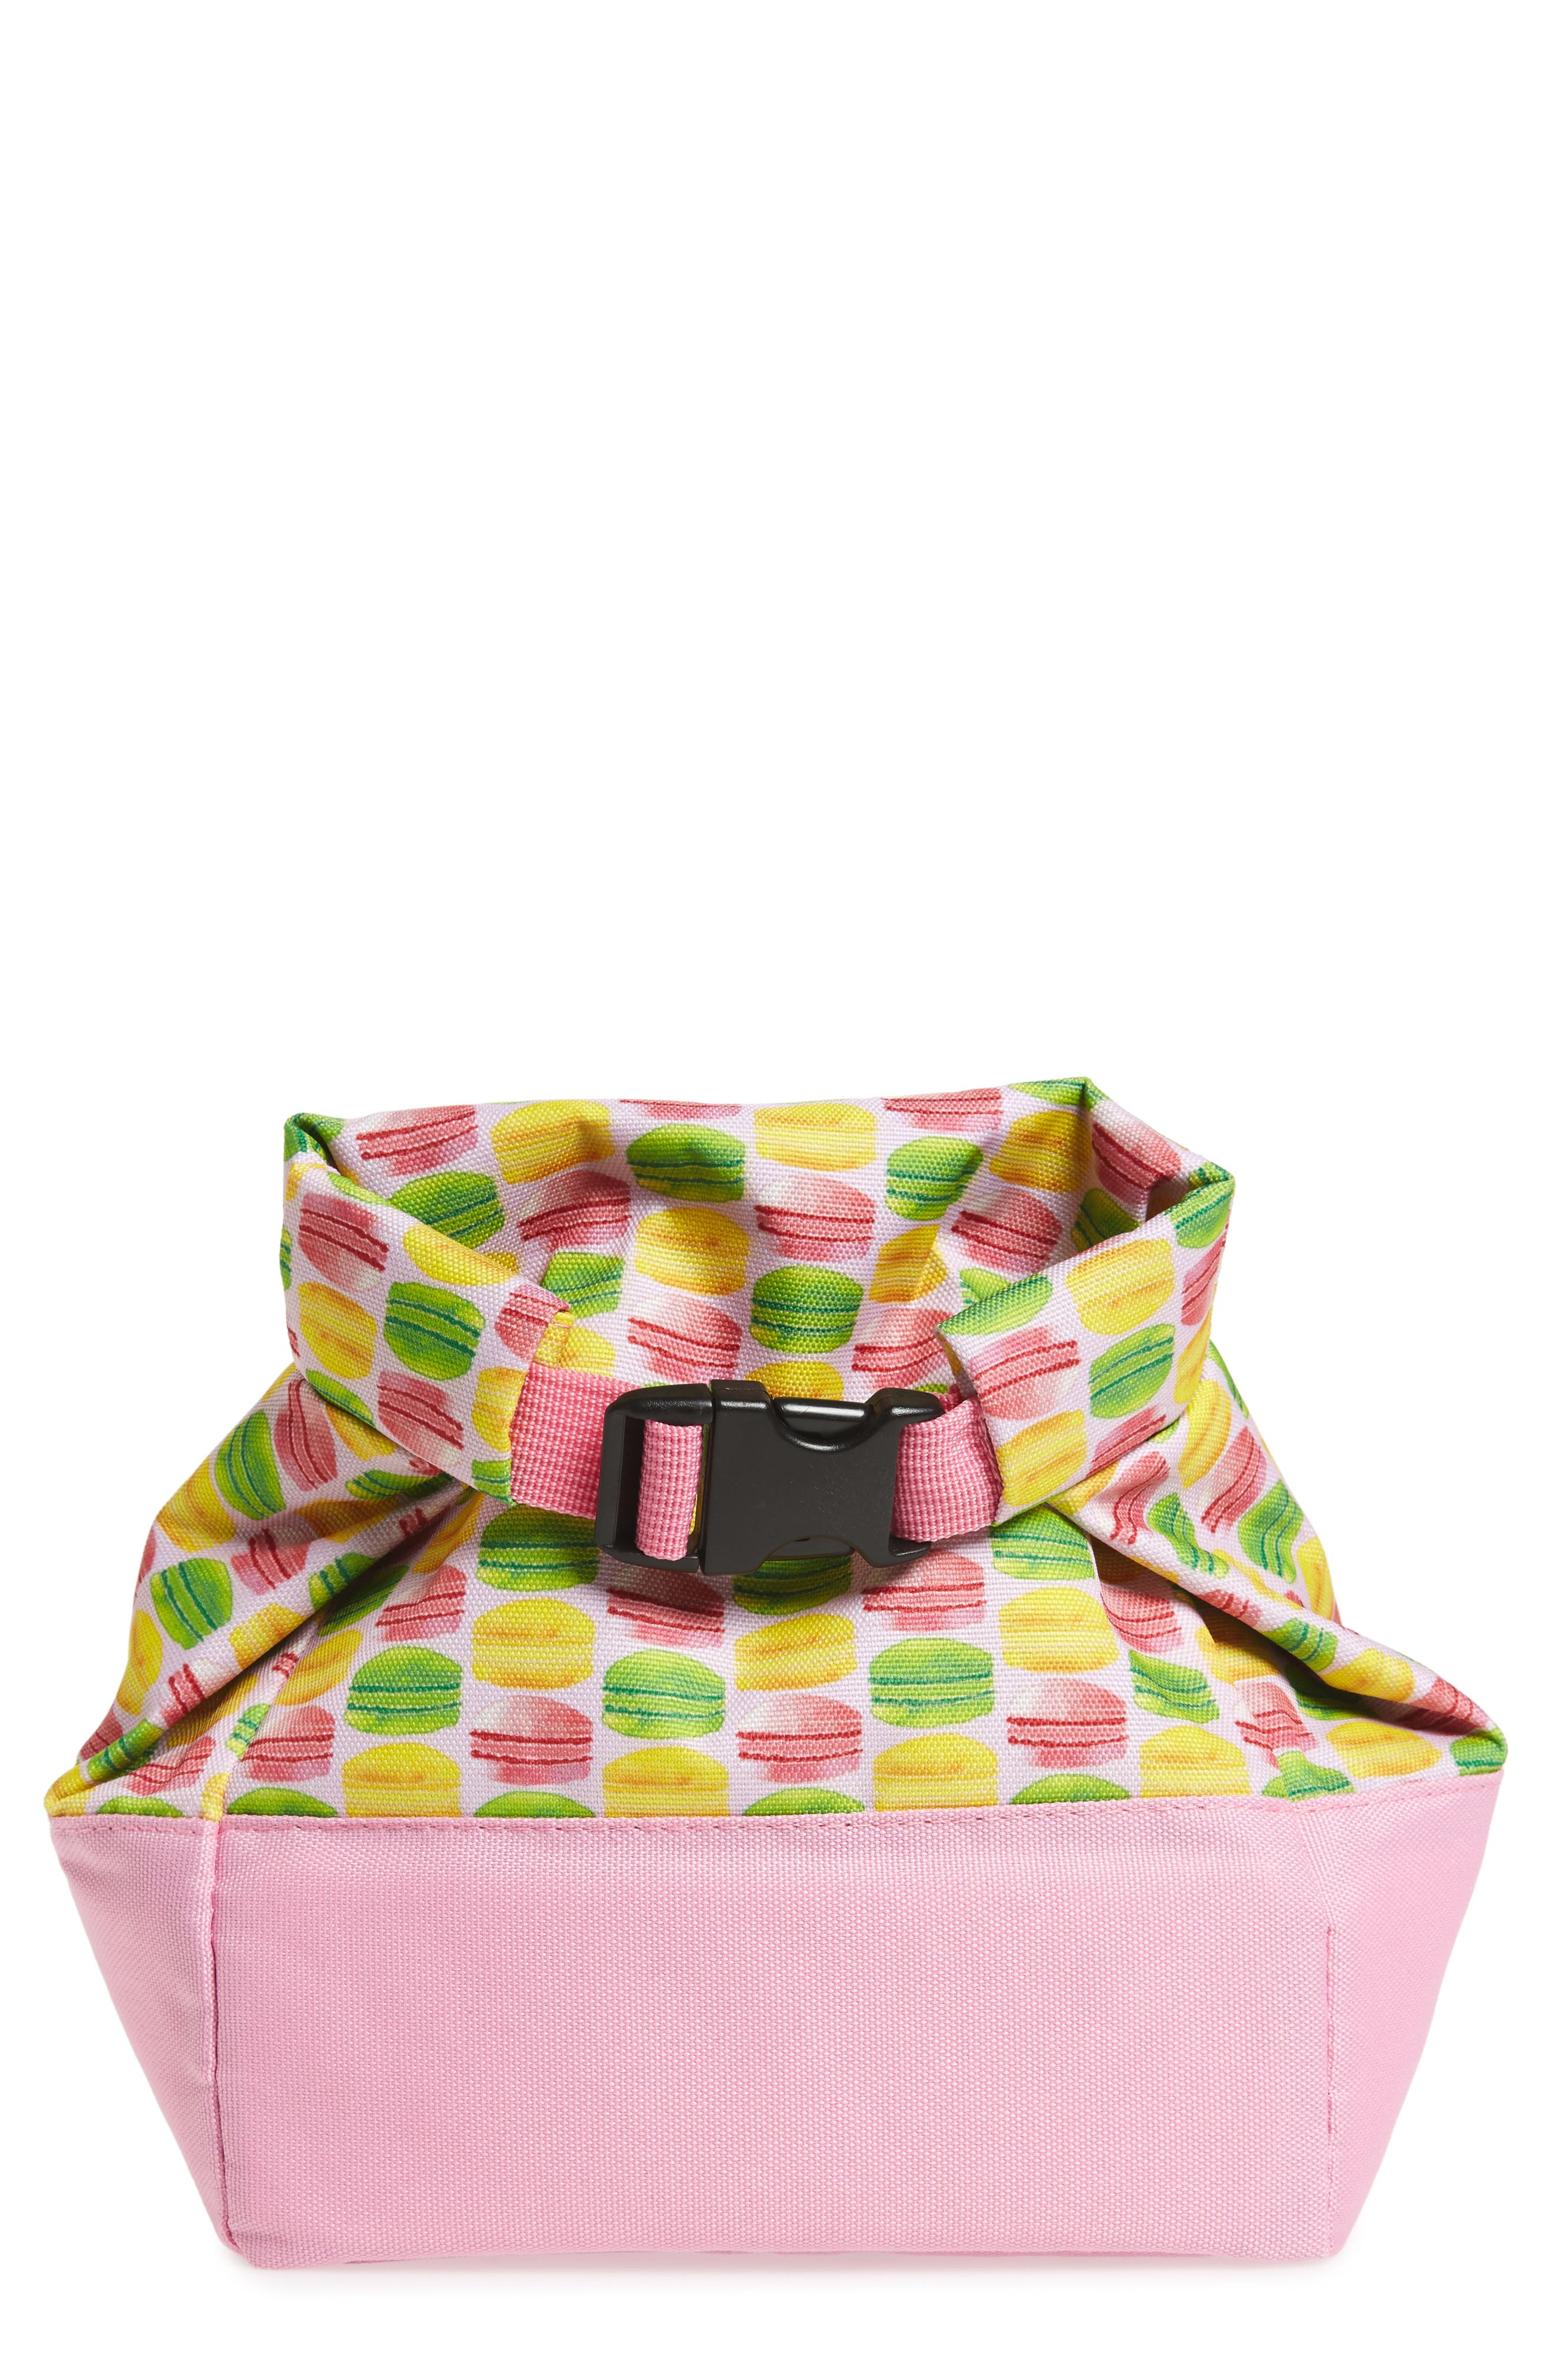 Macaron Print Roll Top Lunch Bag,                             Main thumbnail 1, color,                             Pink